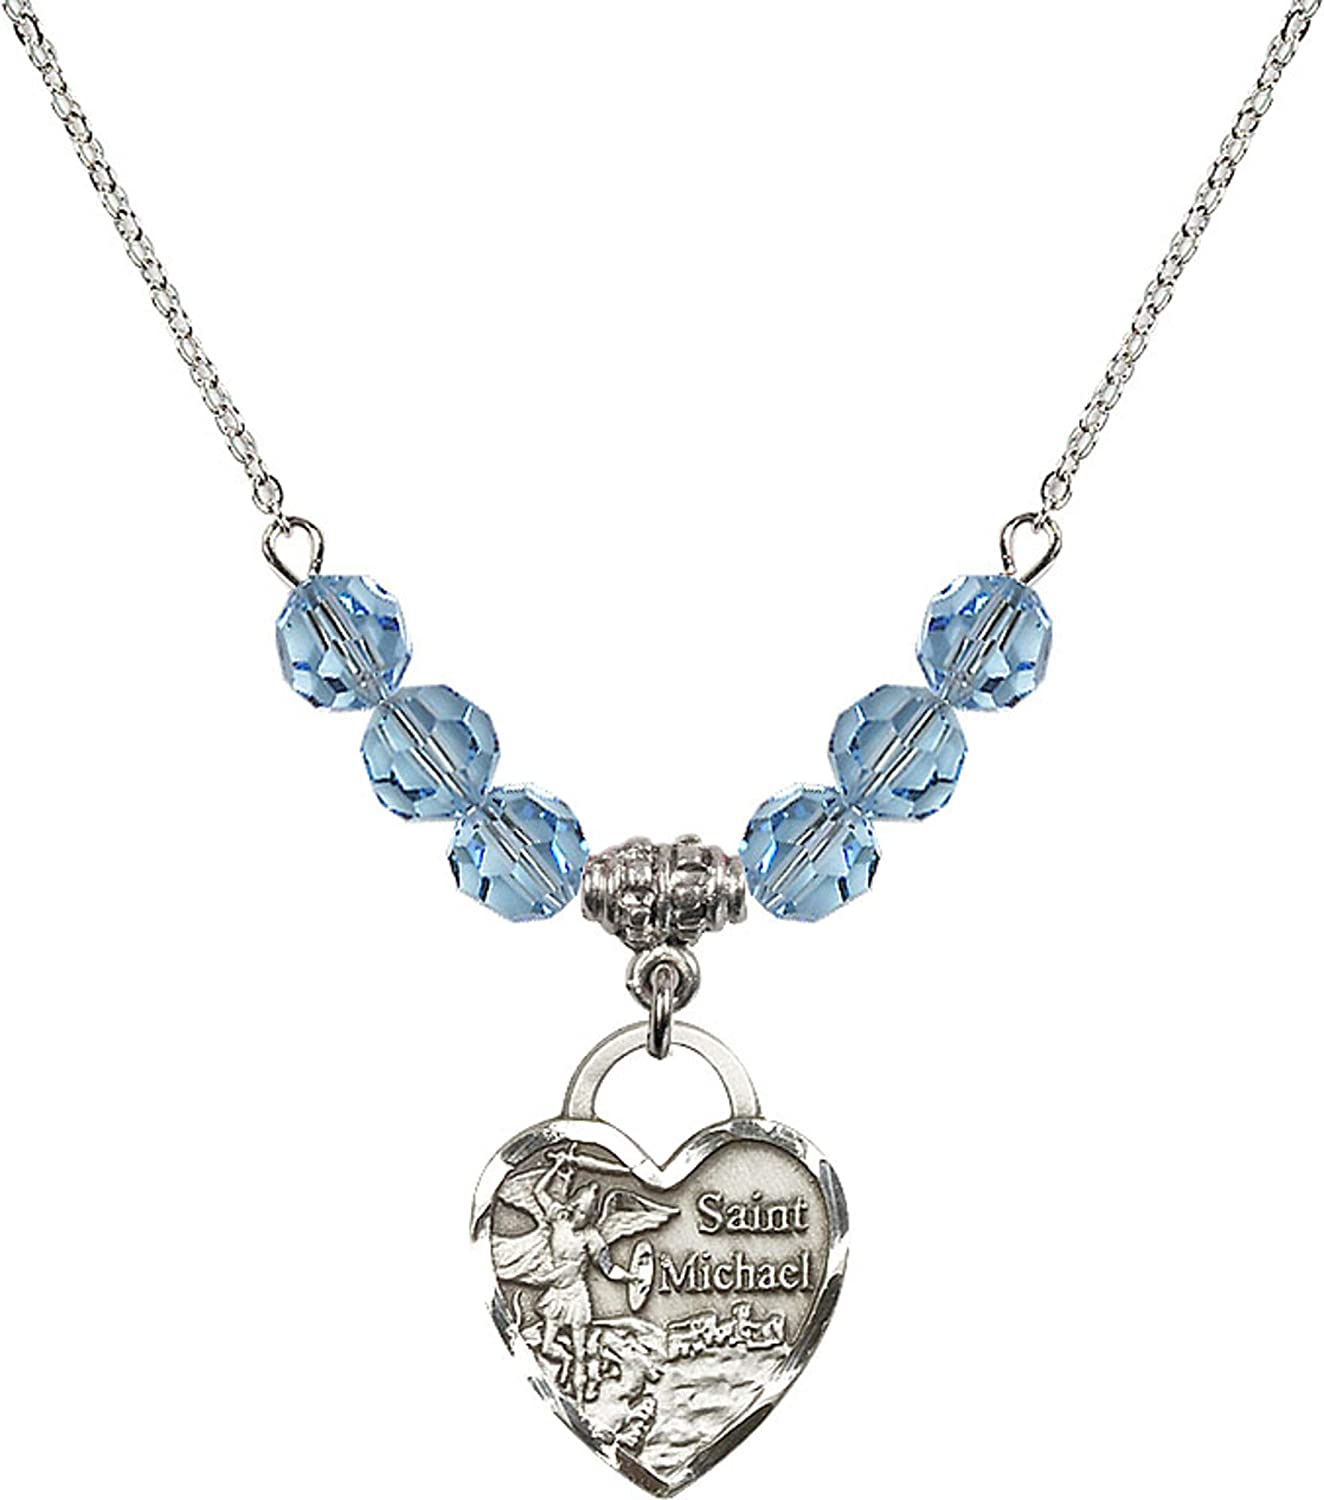 Bonyak Jewelry 18 Inch Rhodium Plated Necklace w// 6mm Blue March Birth Month Stone Beads and Saint Michael The Archangel Charm